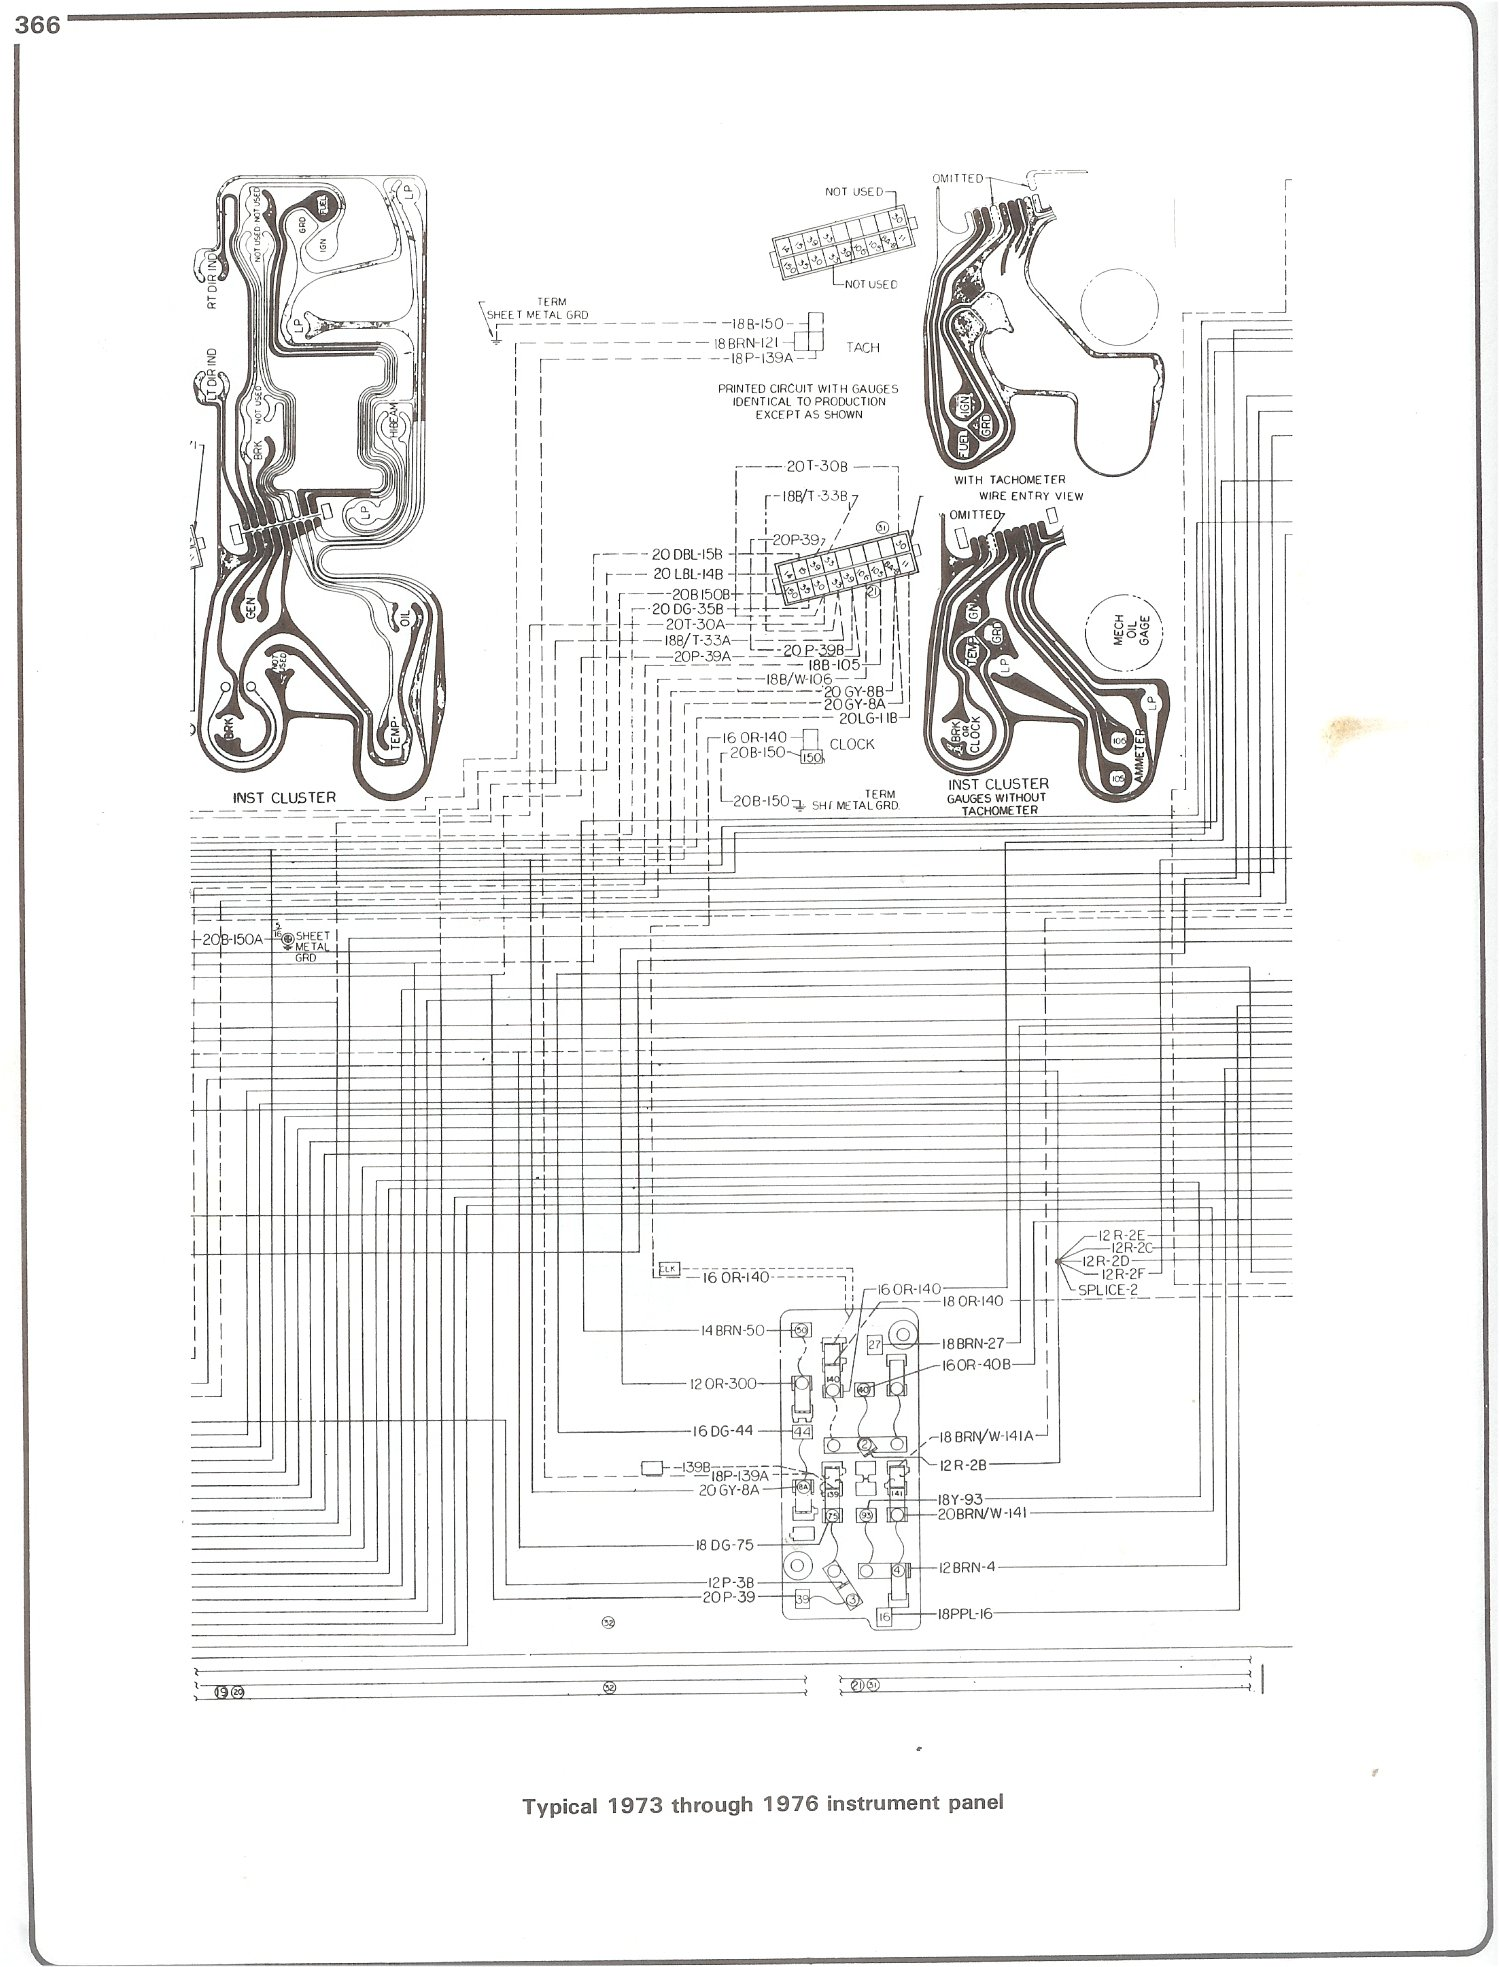 86 K5 Blazer Wiring Diagram Golden Schematic Ford Xl2f Radio 73 76 Instrument Cluster